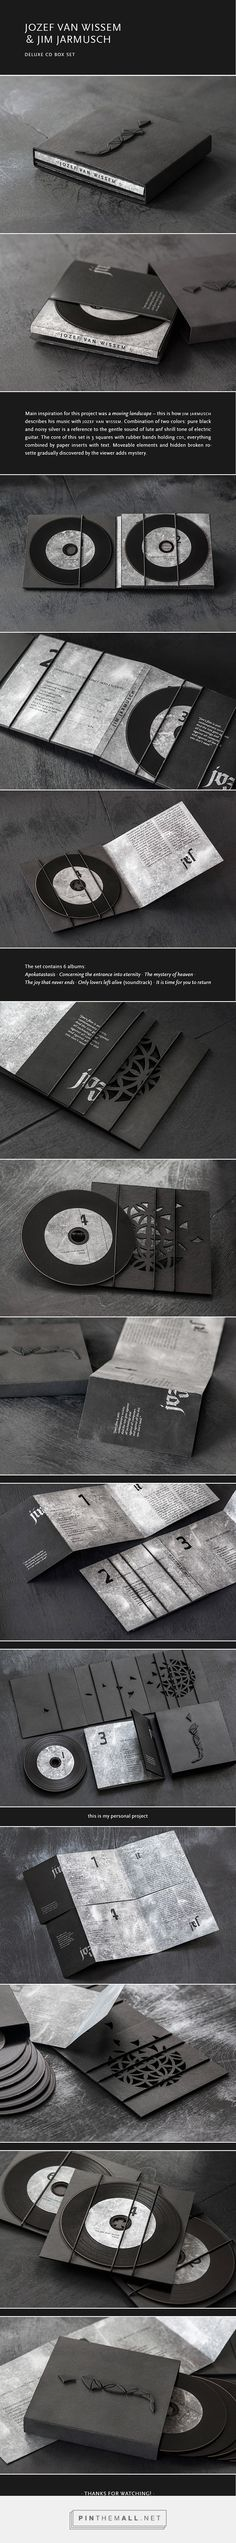 Jozef Van Wissem & Jim Jarmusch on Behance - created via http://pinthemall.net